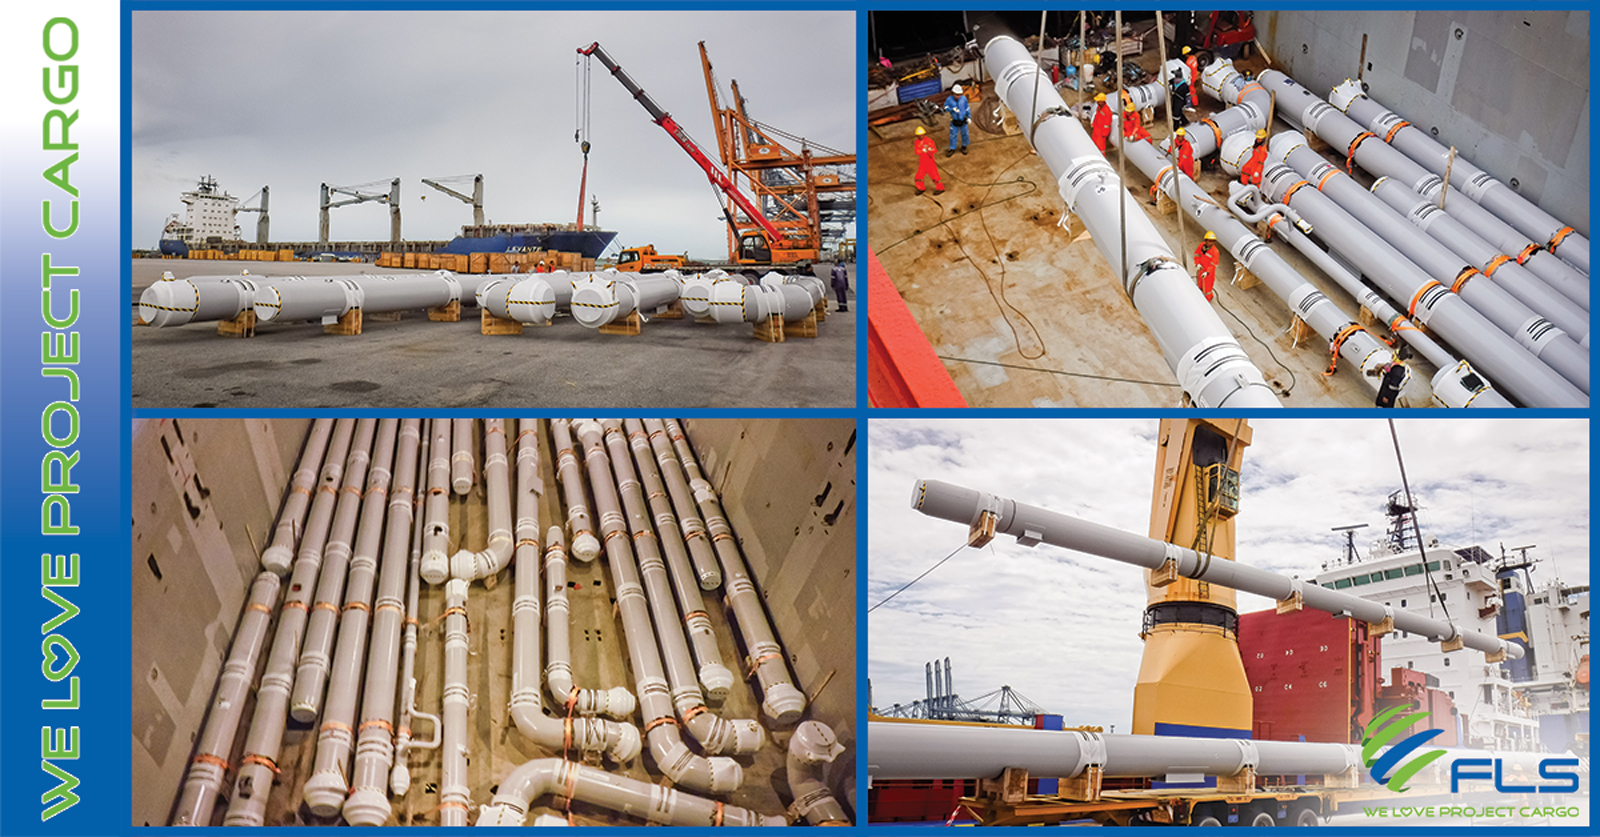 FLS Projects is shipping Vacuum Insulated Pipe Spools